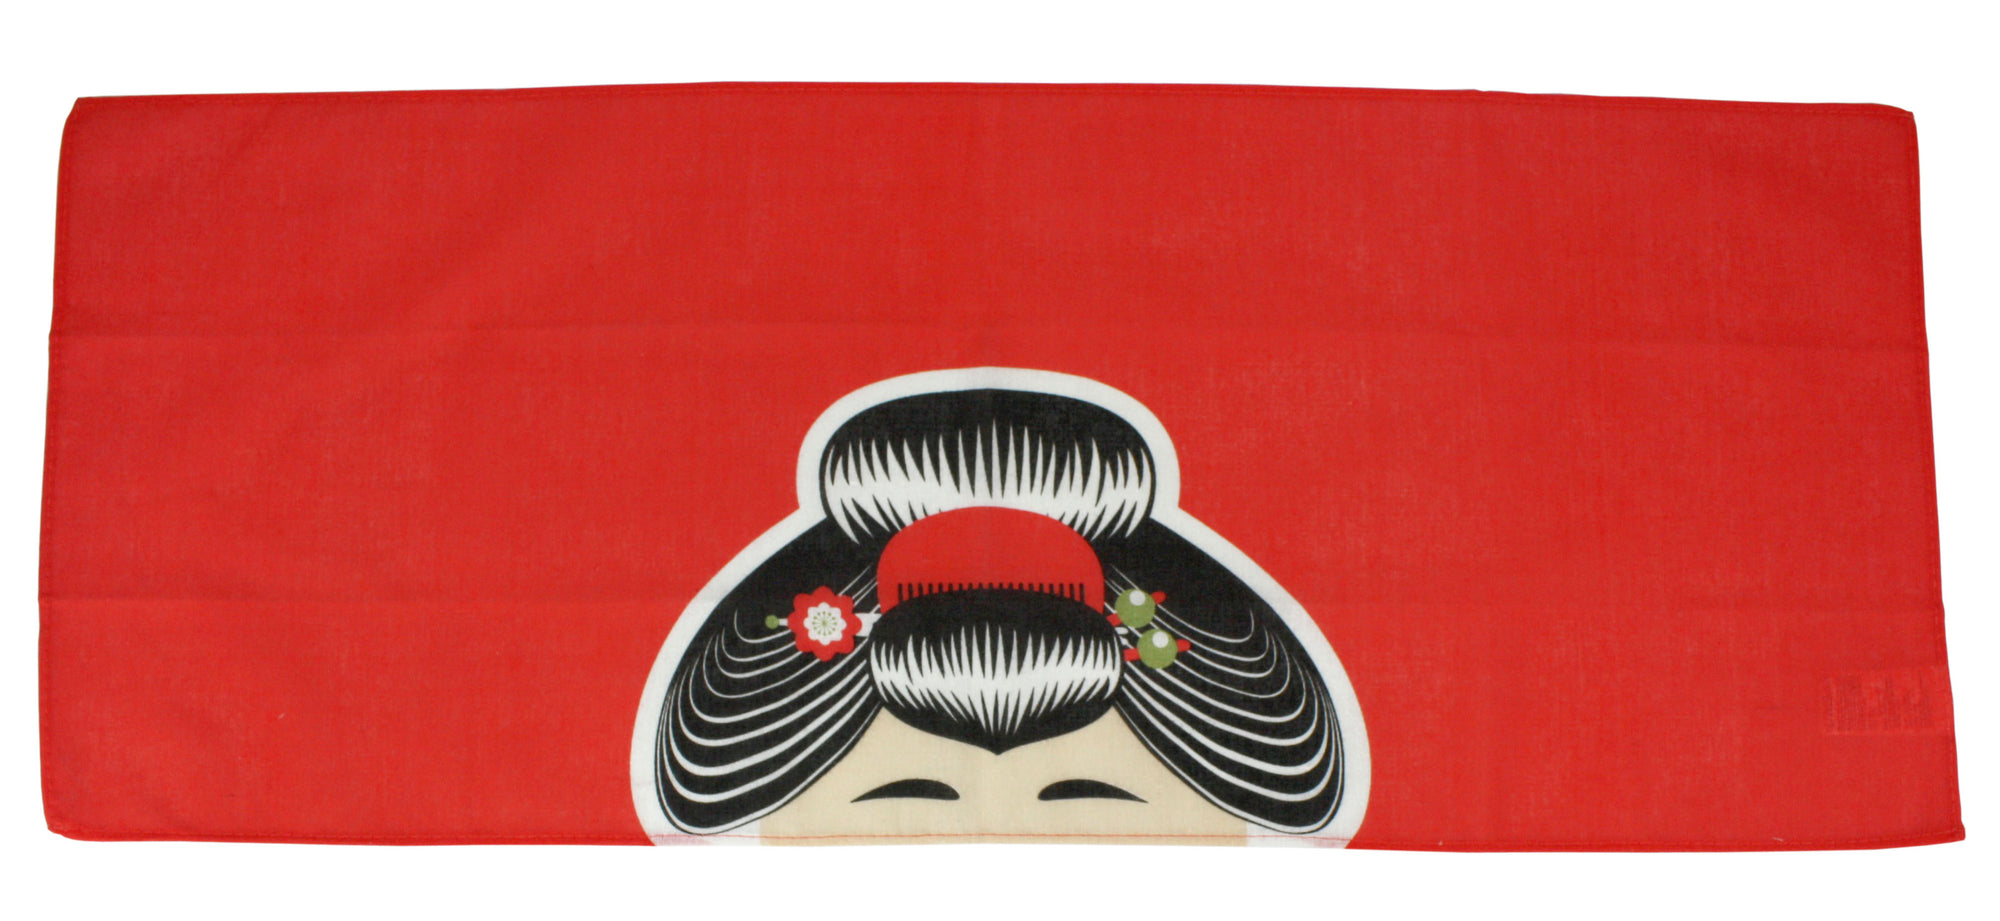 Japanese Head Covering Cloth, Machi Musume Style, 87cm x 35cm Bandana Style Cotton Hand Towel - farangshop-co